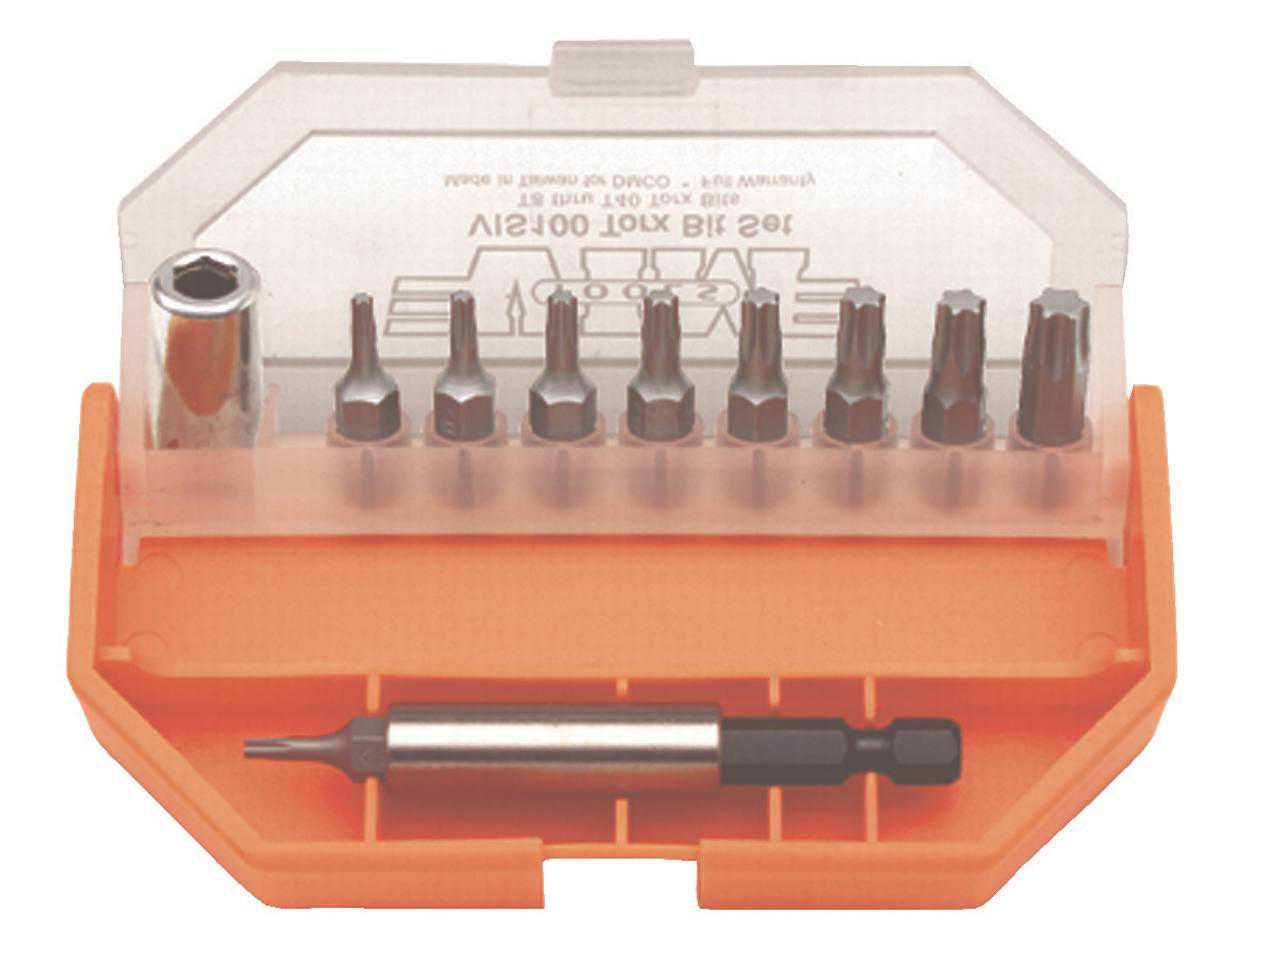 11 Piece Hex Bit Set T8-T40